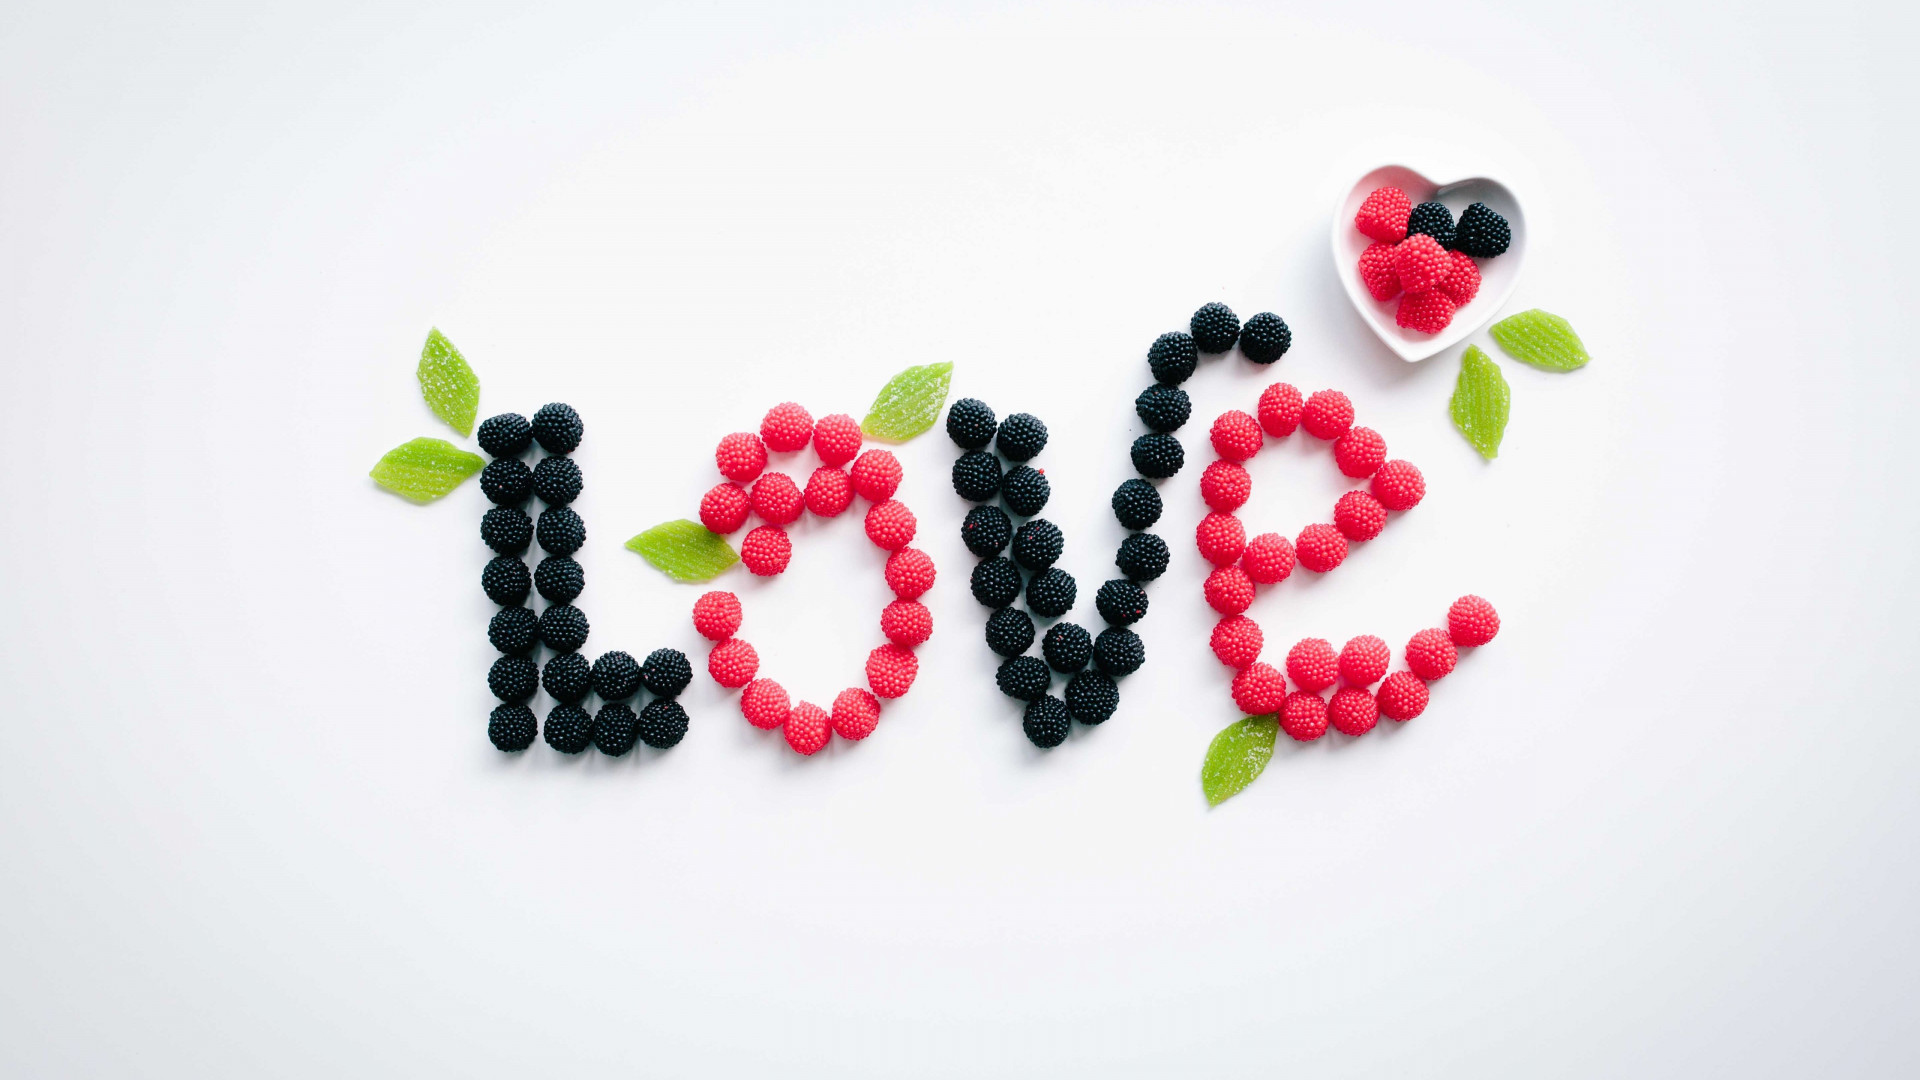 Love message with fruits | 1920x1080 wallpaper